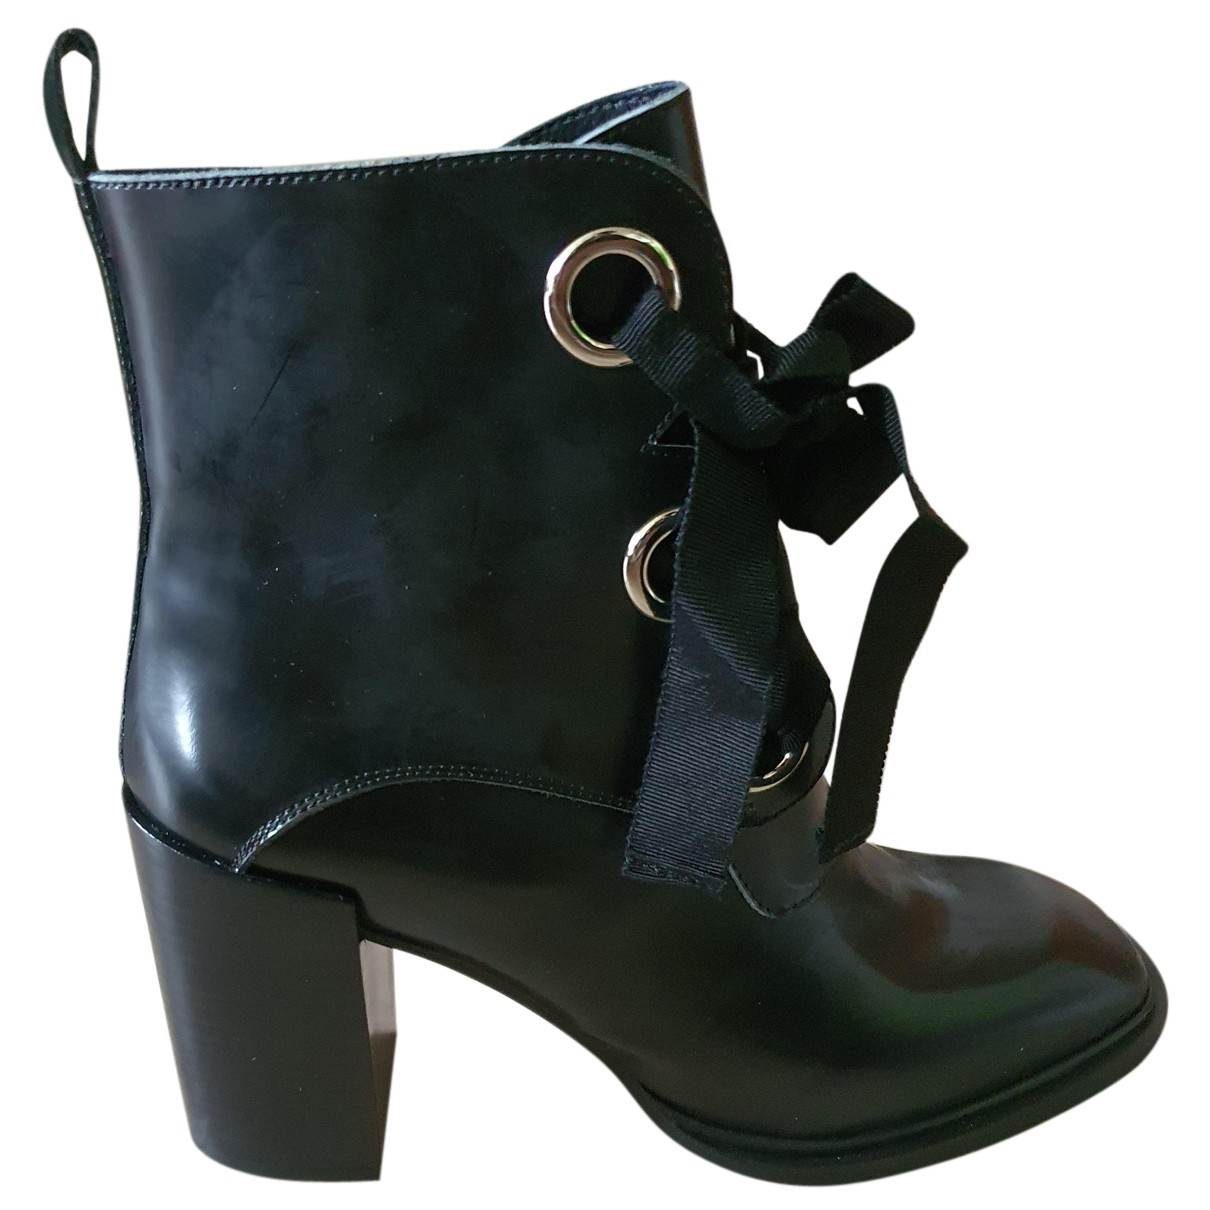 Jeffrey Campbell N Black Leather Boots for Women 39 EU